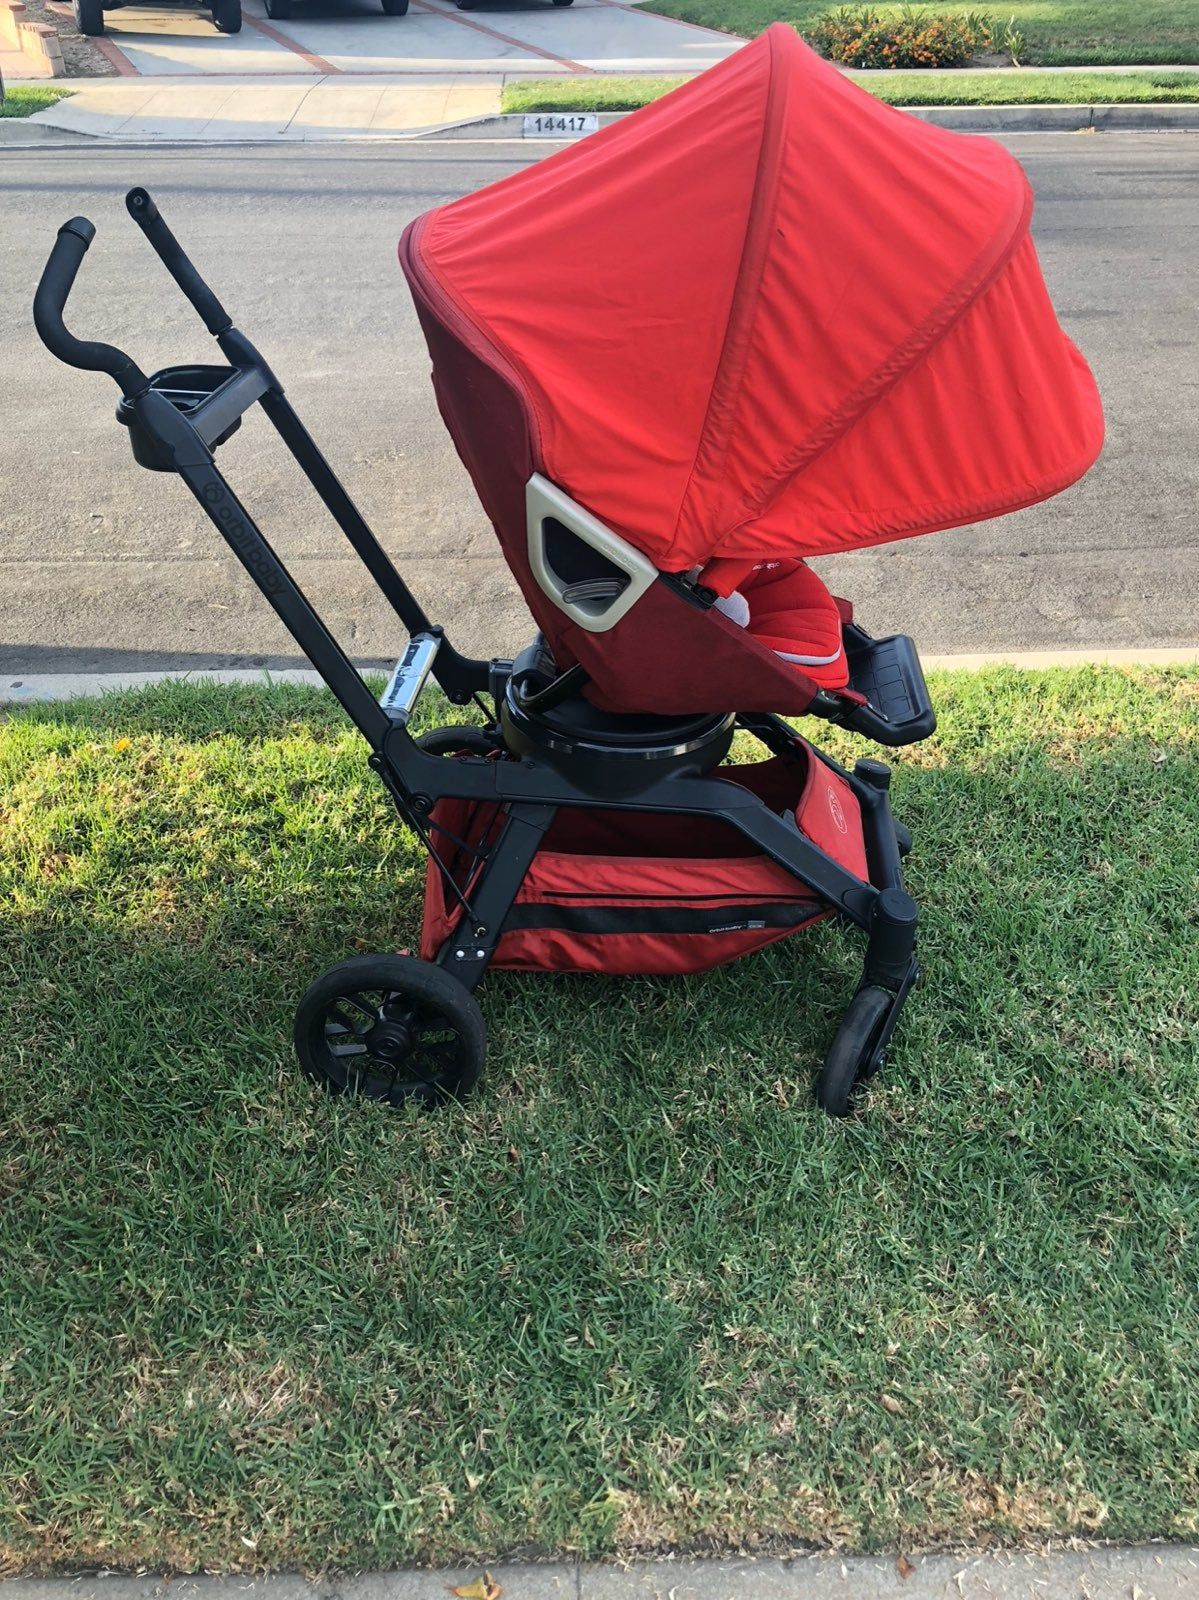 This travel system is the orbit baby g2. It's in good